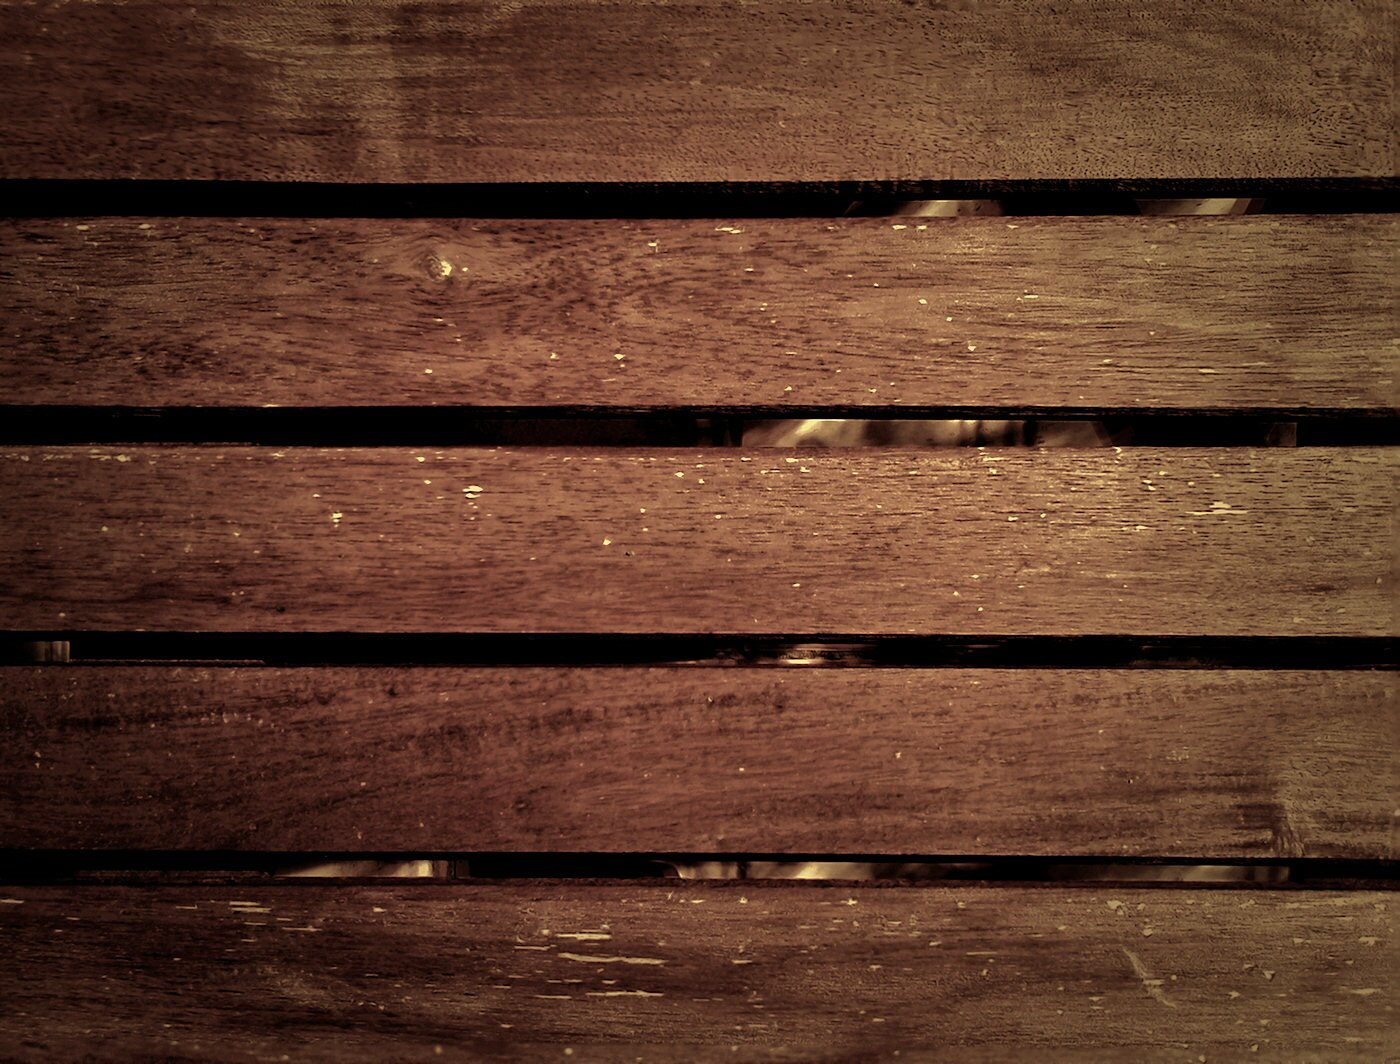 Vintage wood wallpaper vintage wood wallpaper for android backgrounds - Wood Texture Wallpaper Collection For Android